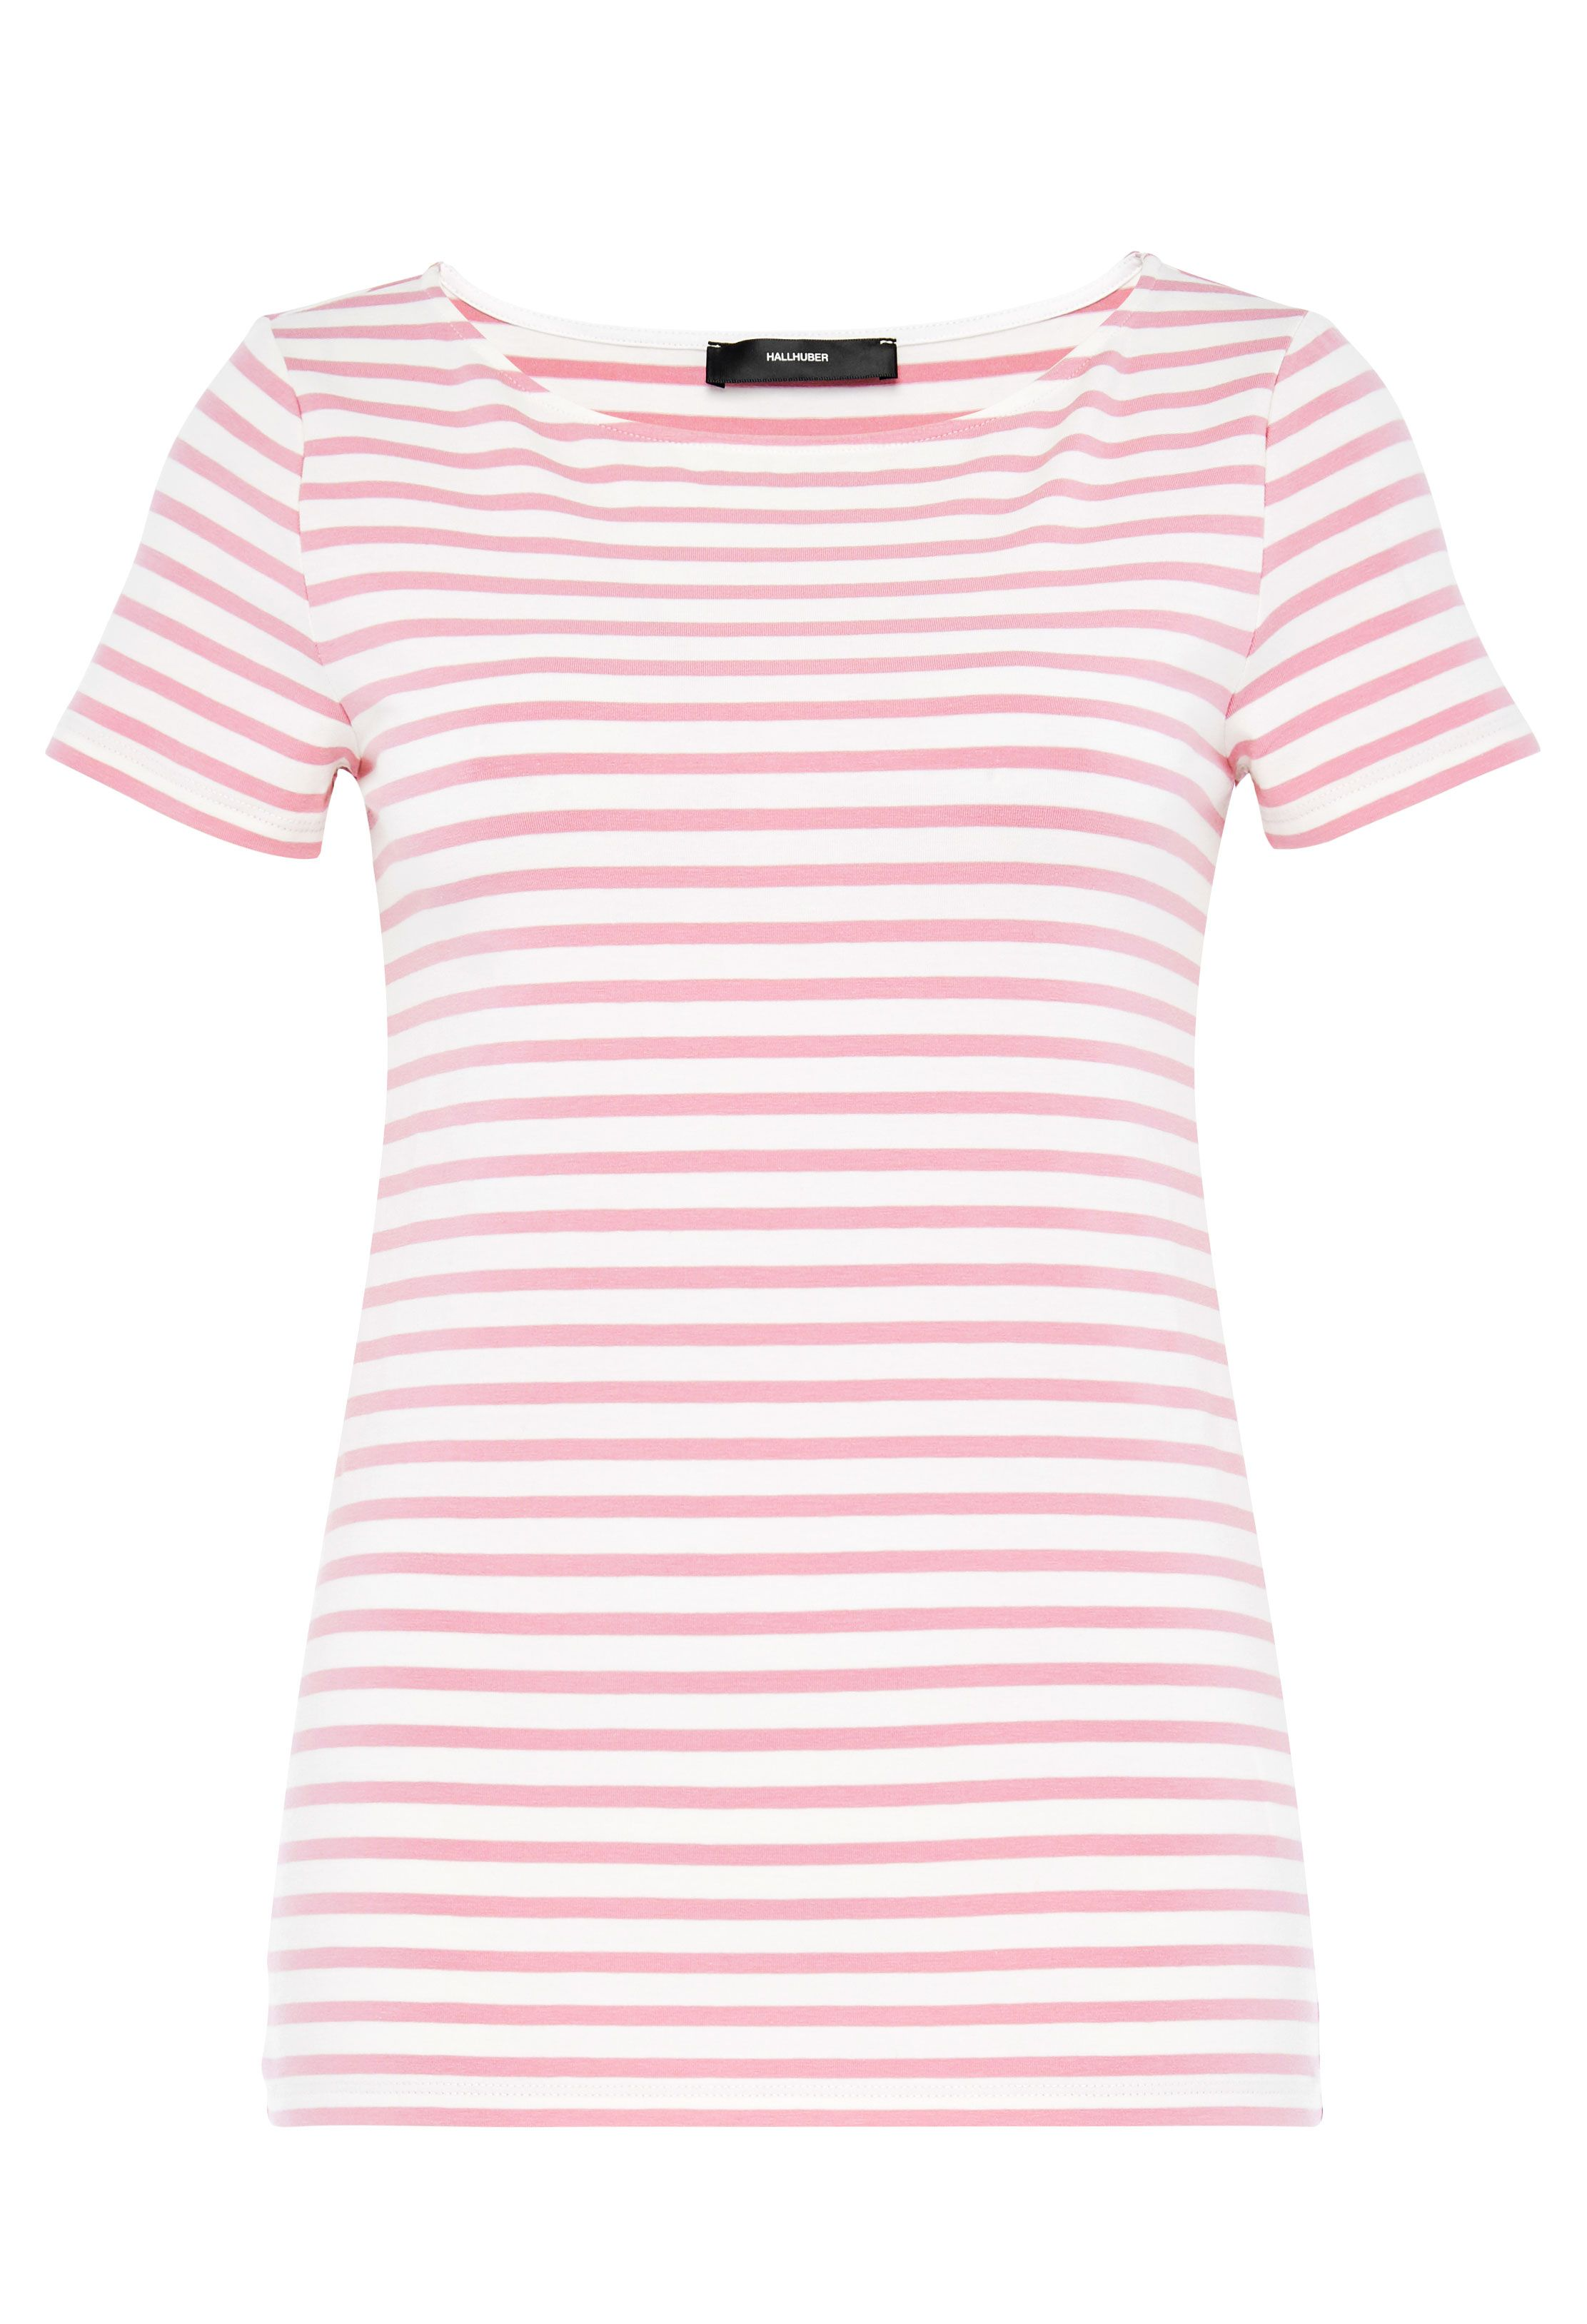 Hallhuber Basic Stripe Top, Pink